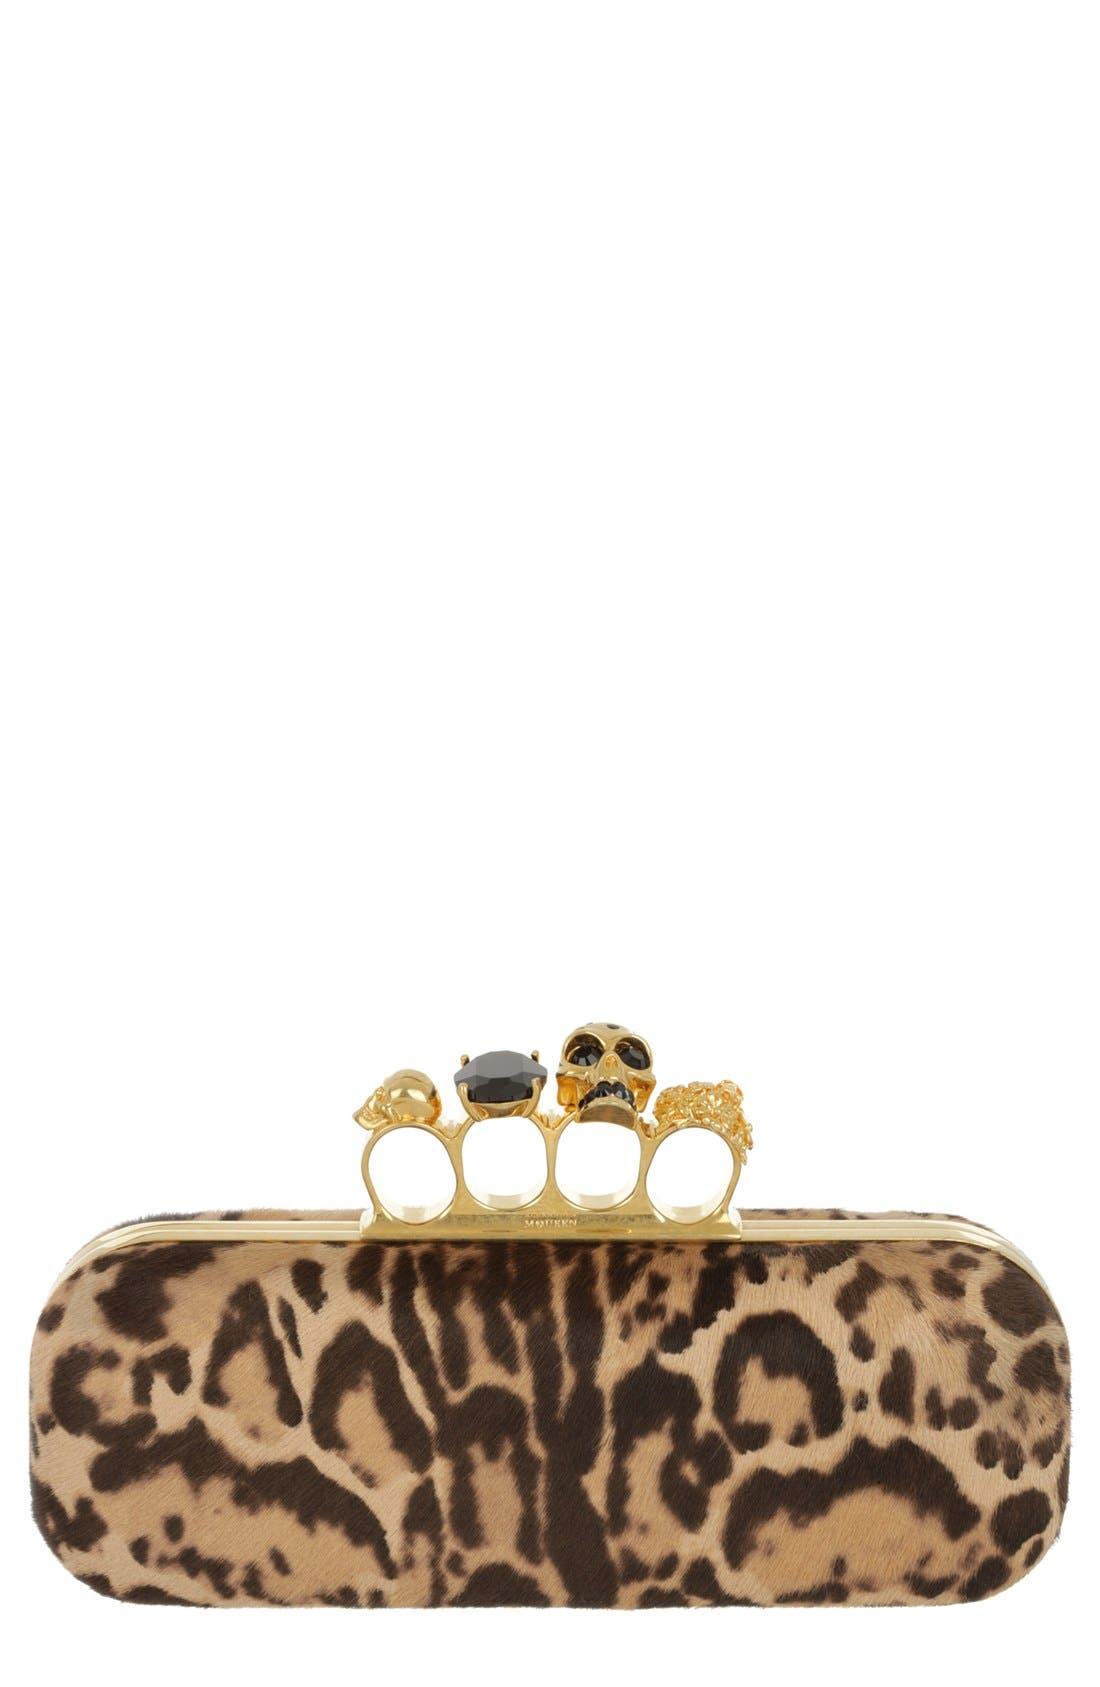 Alternate Image 1 Selected - Alexander McQueen 'Knucklebox' Leopard Print Calf Hair Clutch